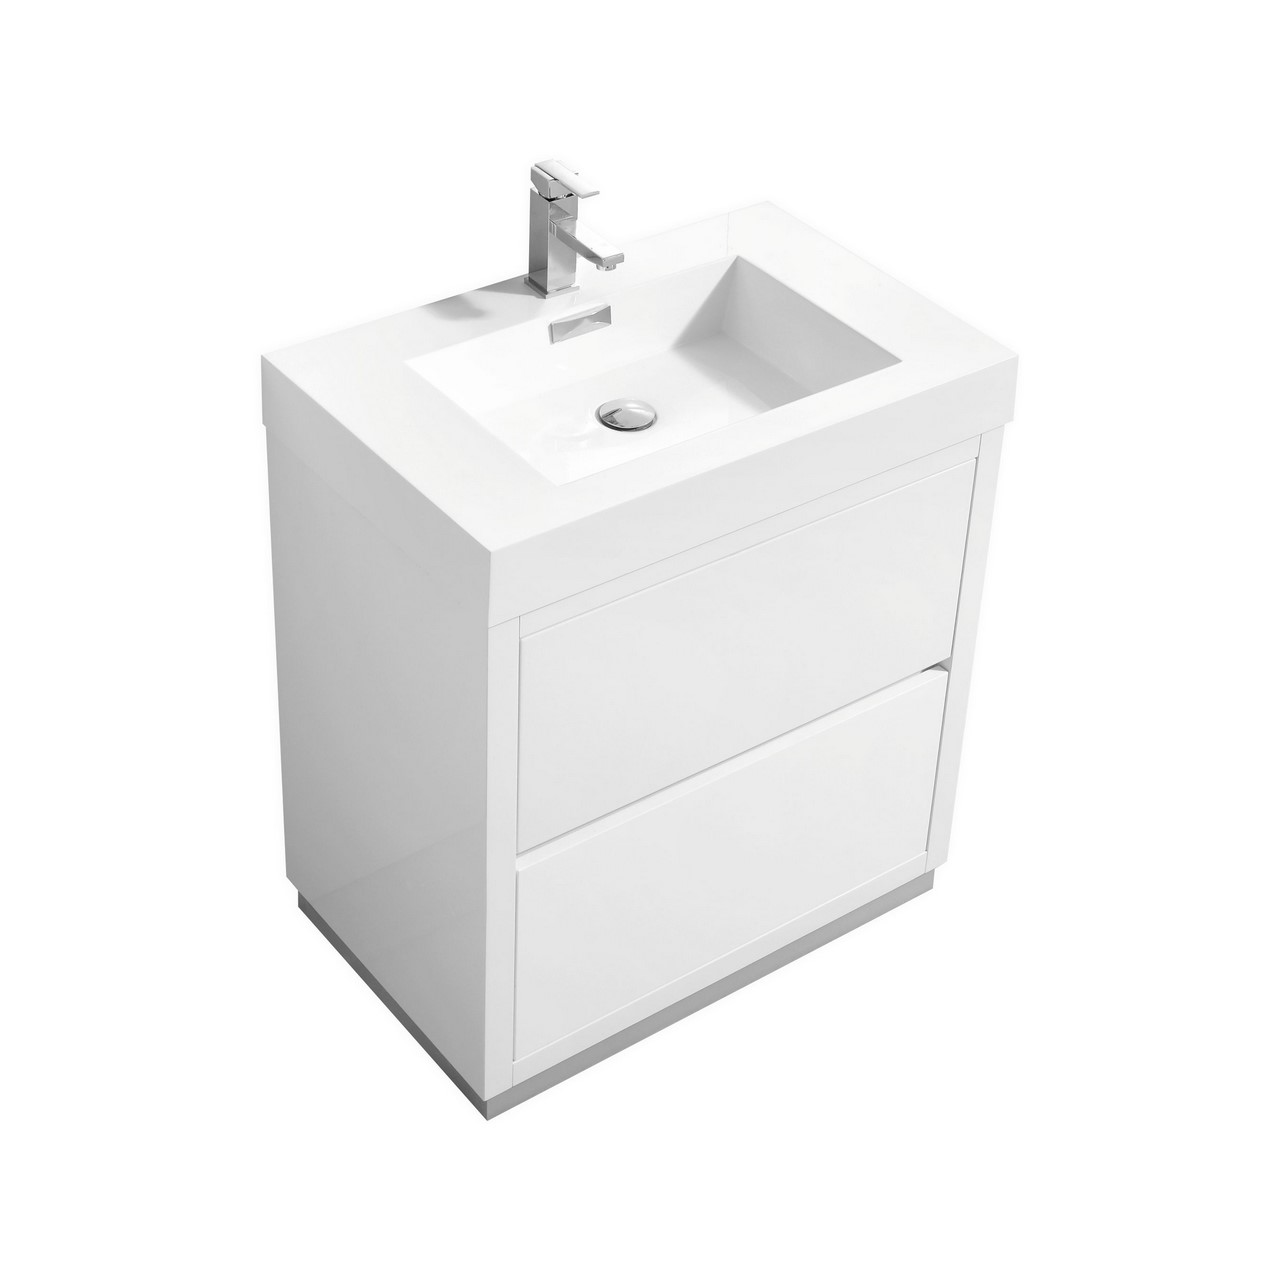 Bliss 30 high gloss white free standing modern bathroom vanity for Freestanding 24 inch bathroom vanity